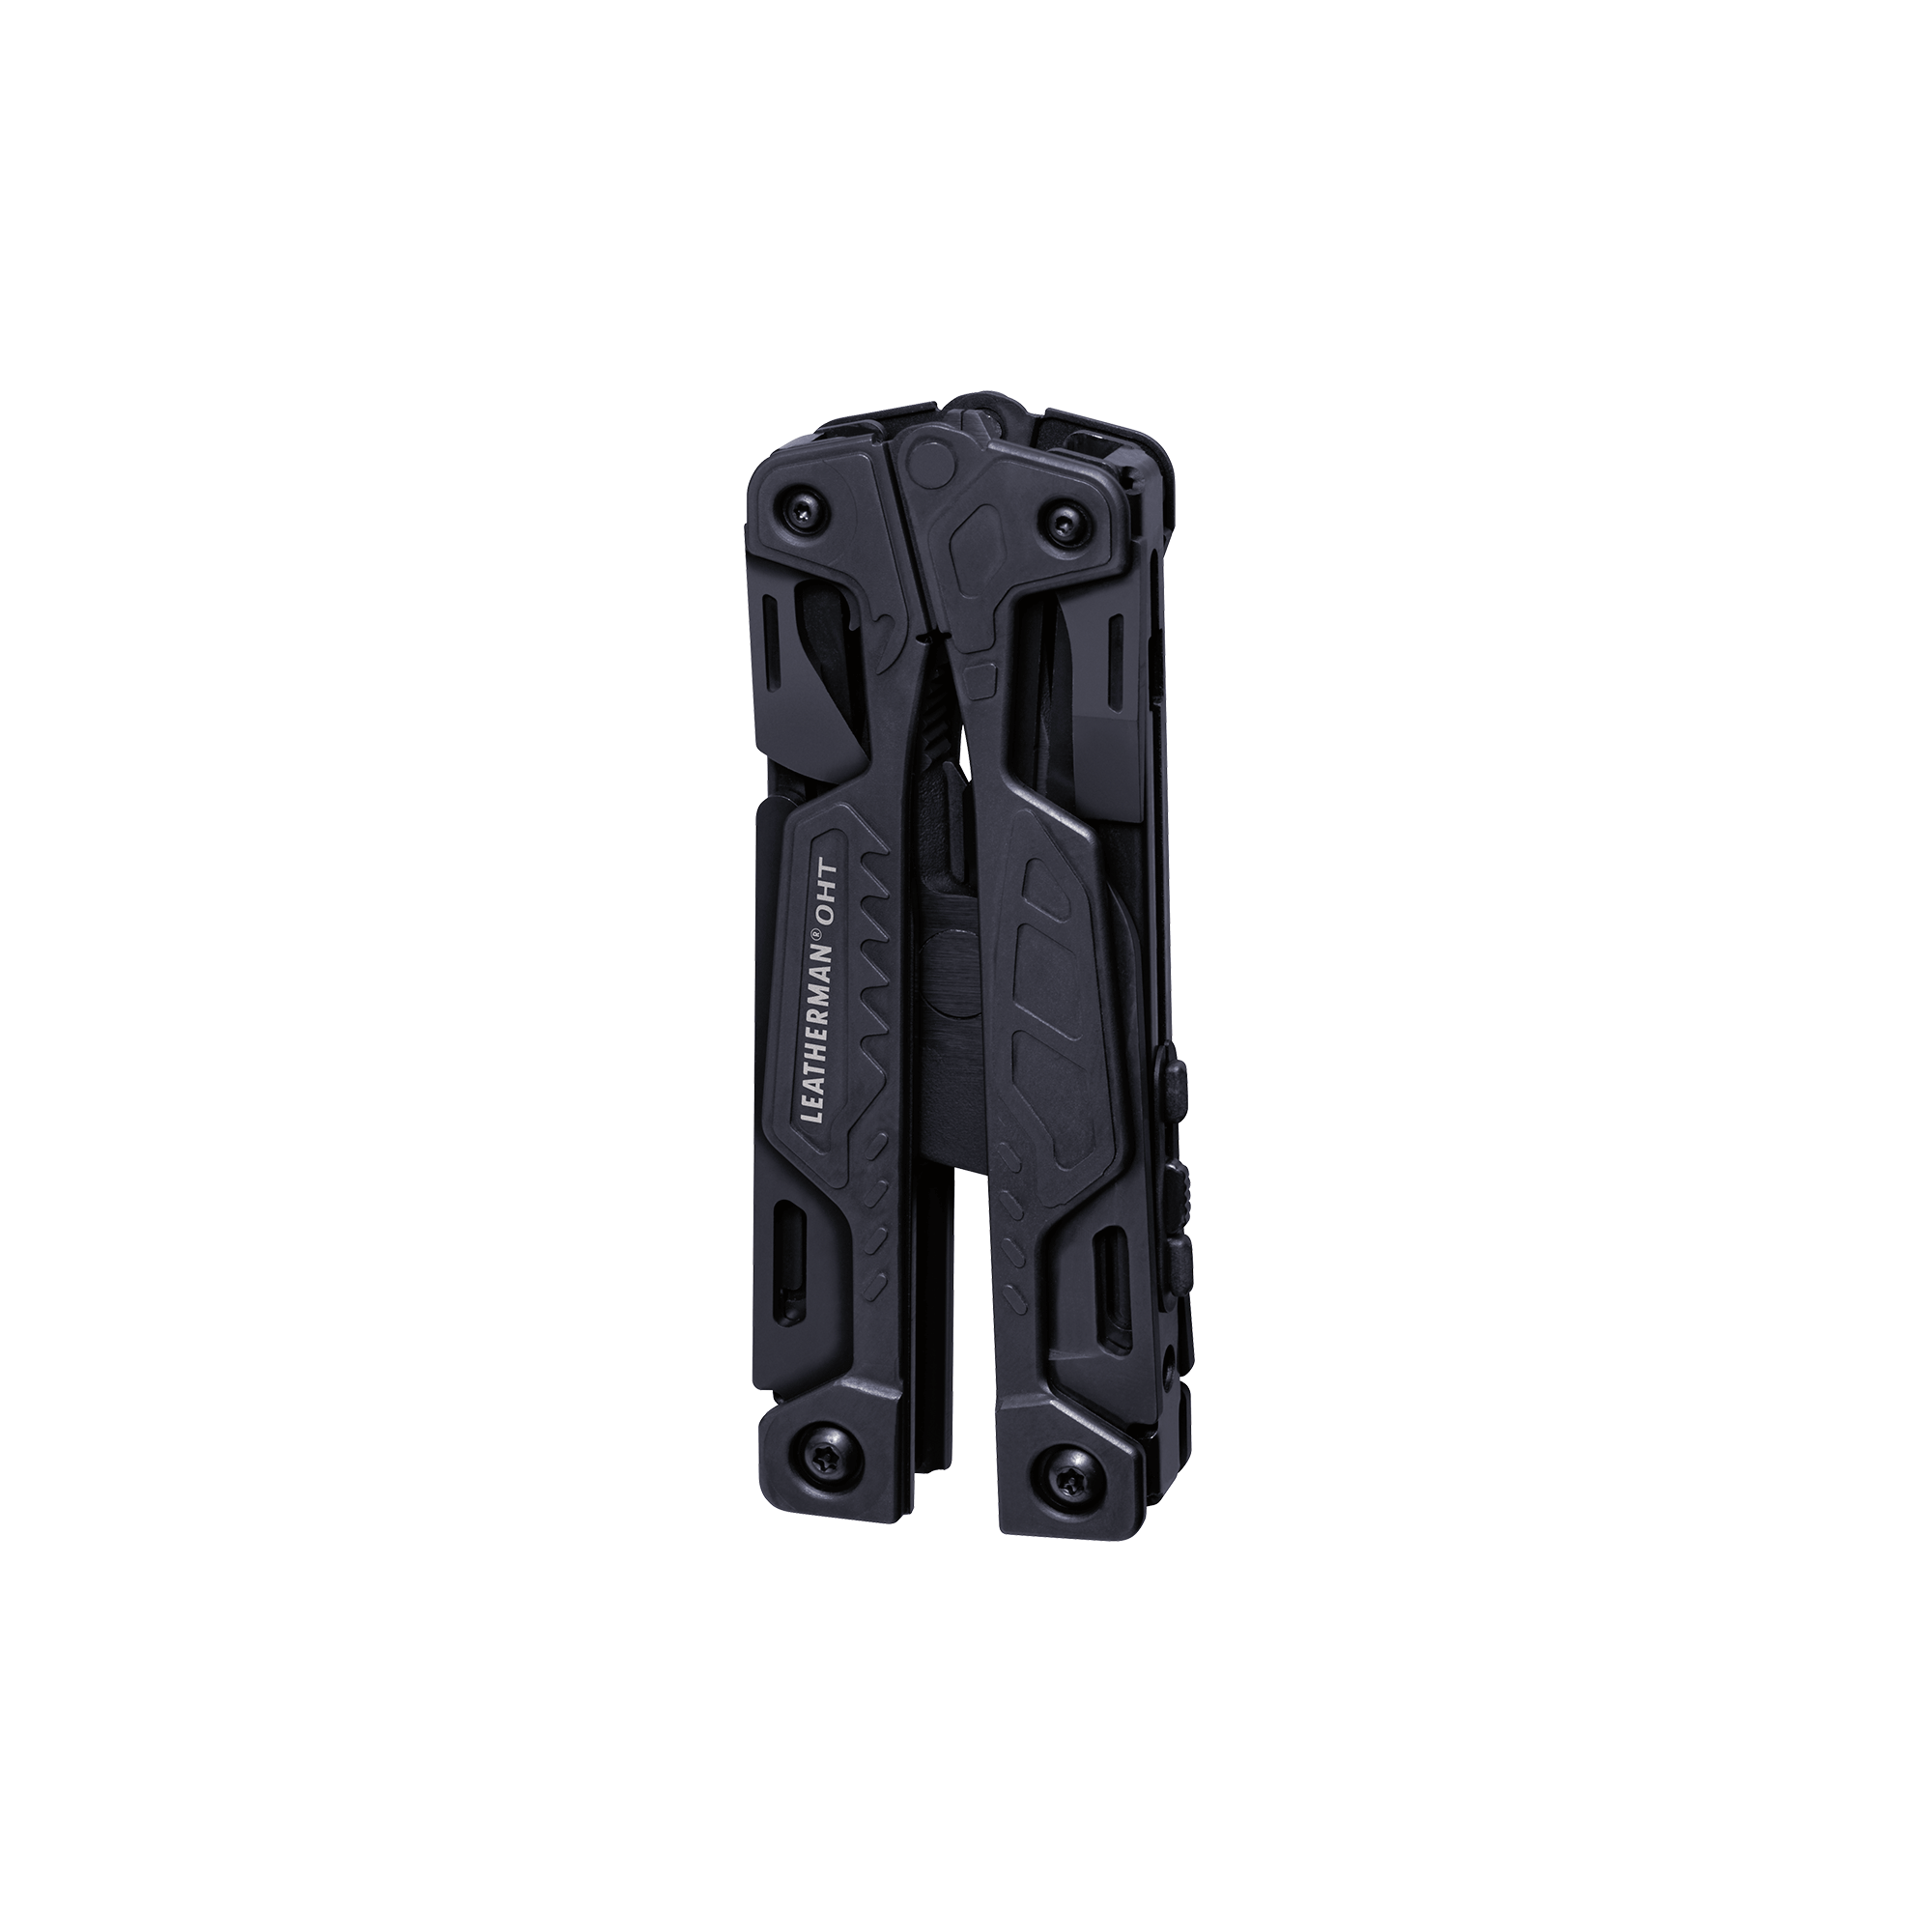 Leatherman OHT multi-tool, black, 16 tools, closed view